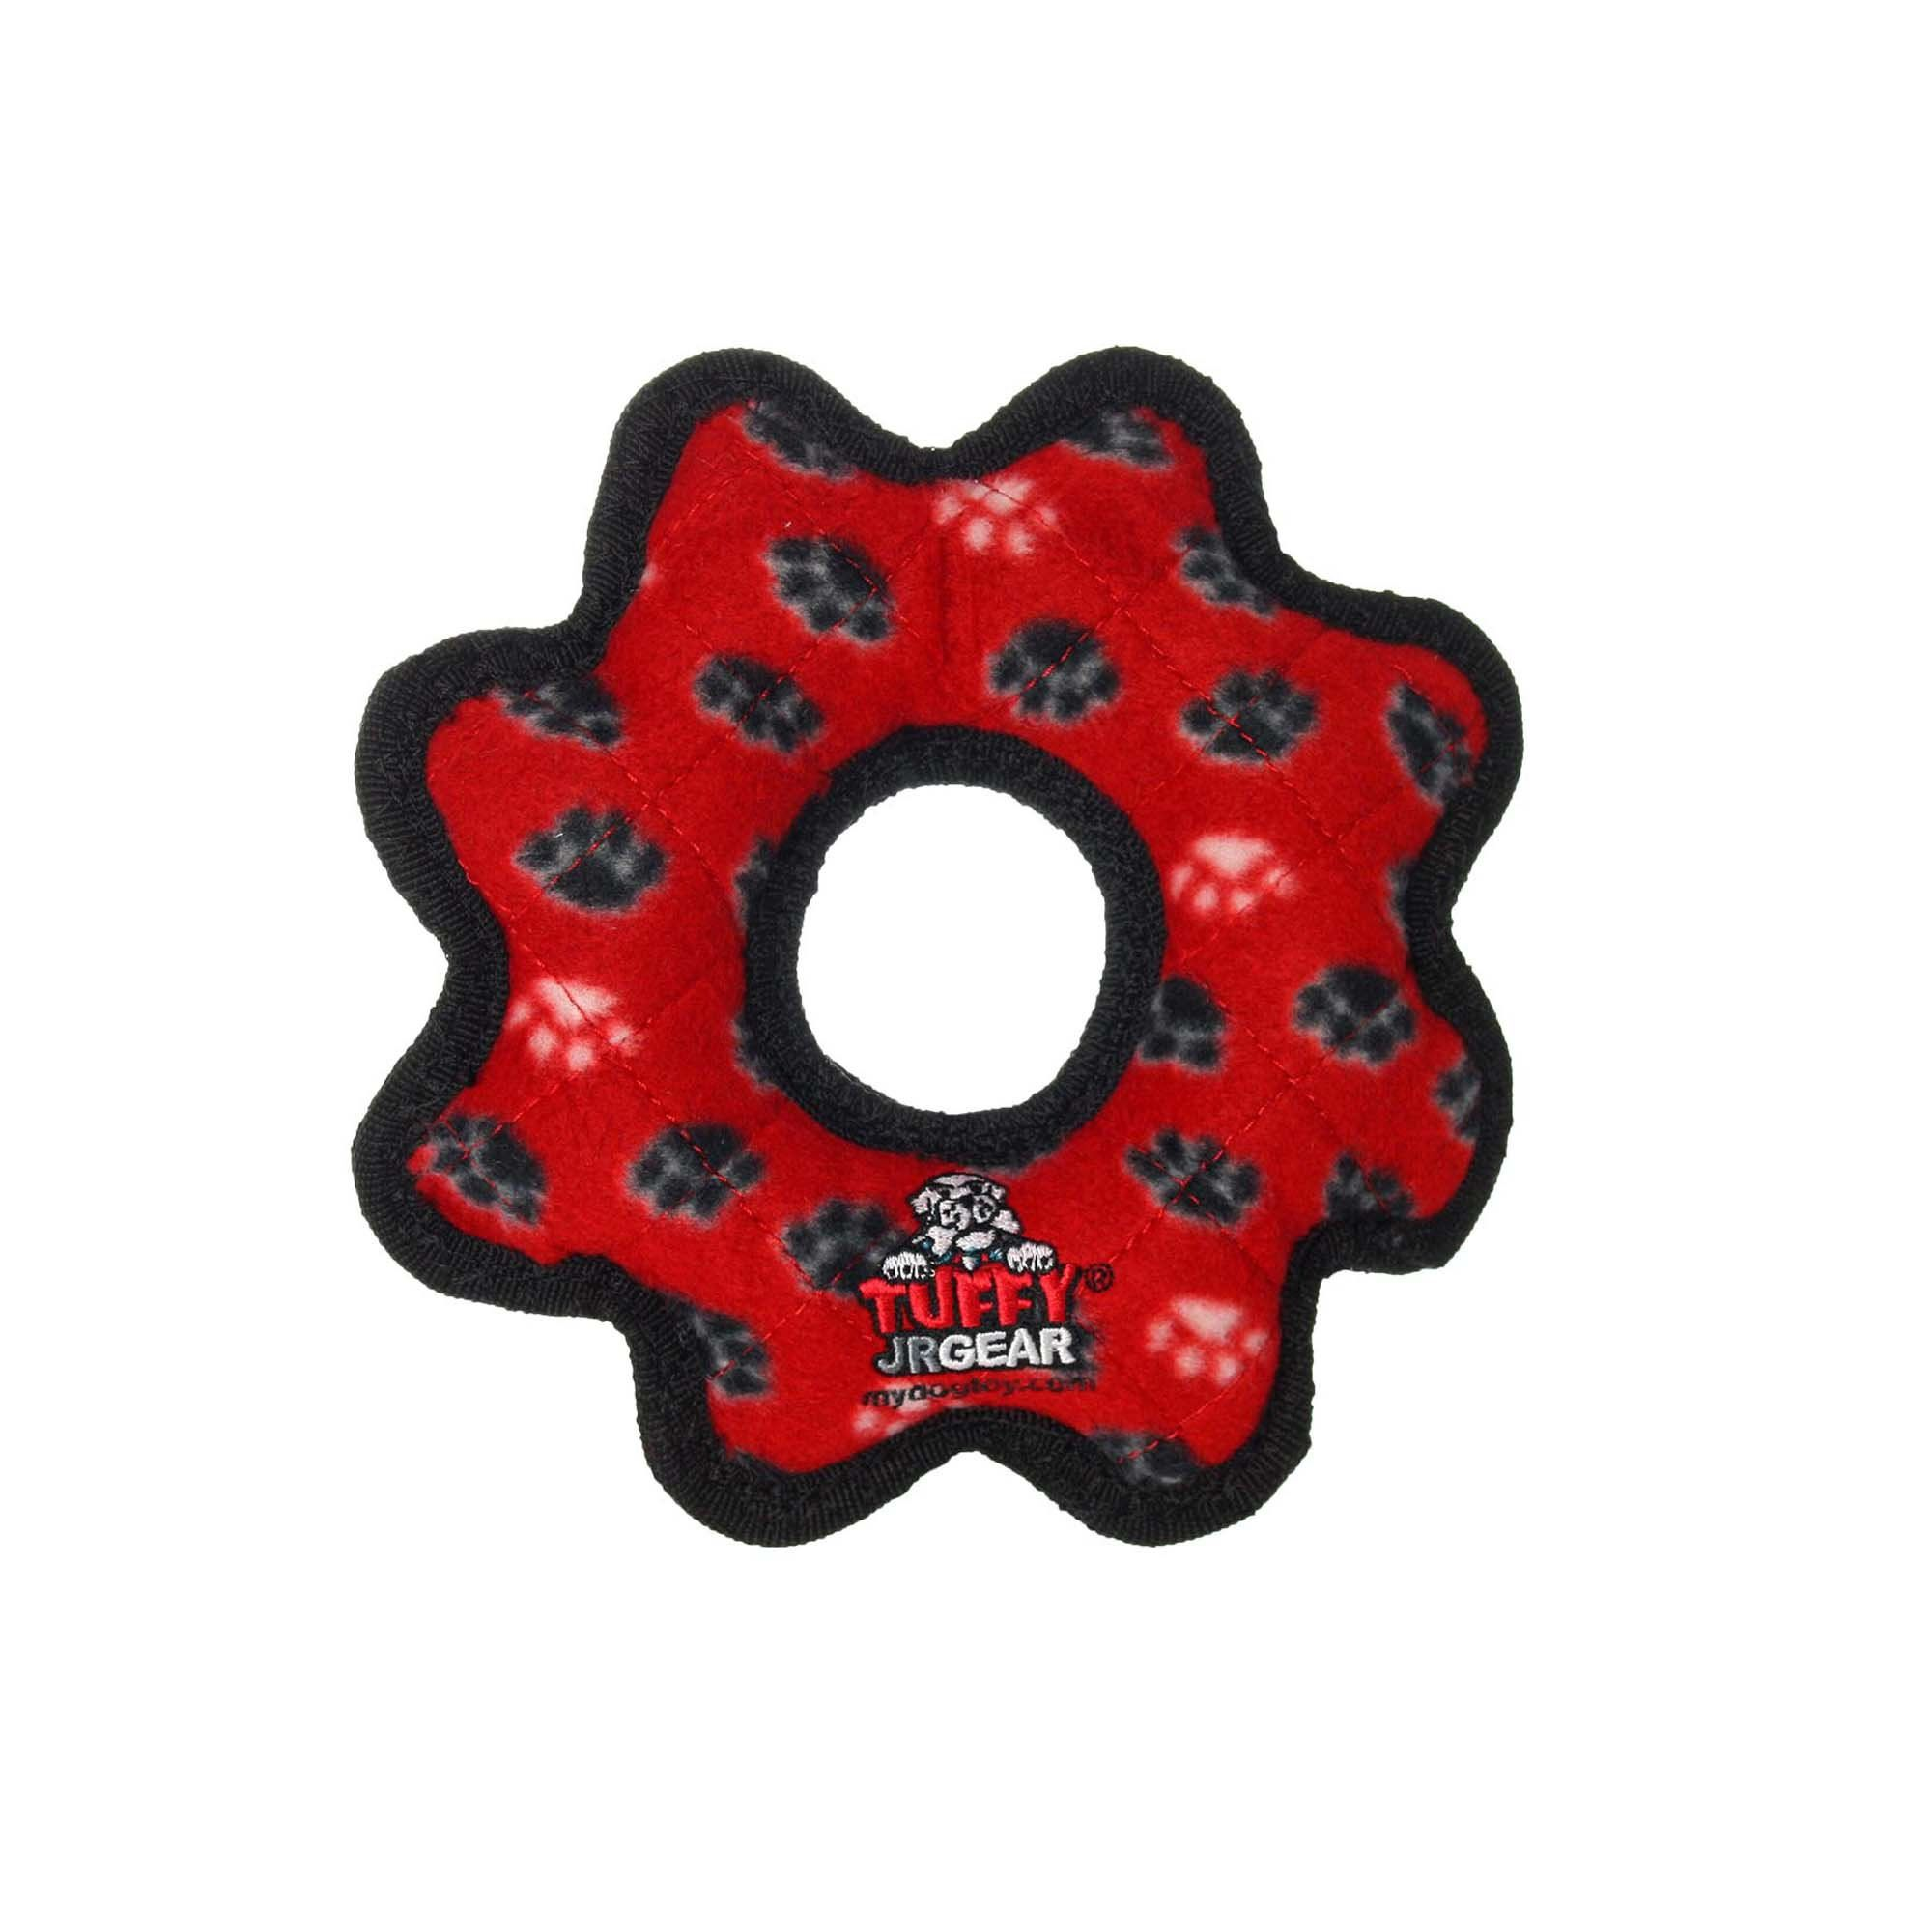 Tuffy S Red Paw Print Jr Gear Ring Tug Dog Toy Small Dog Toys